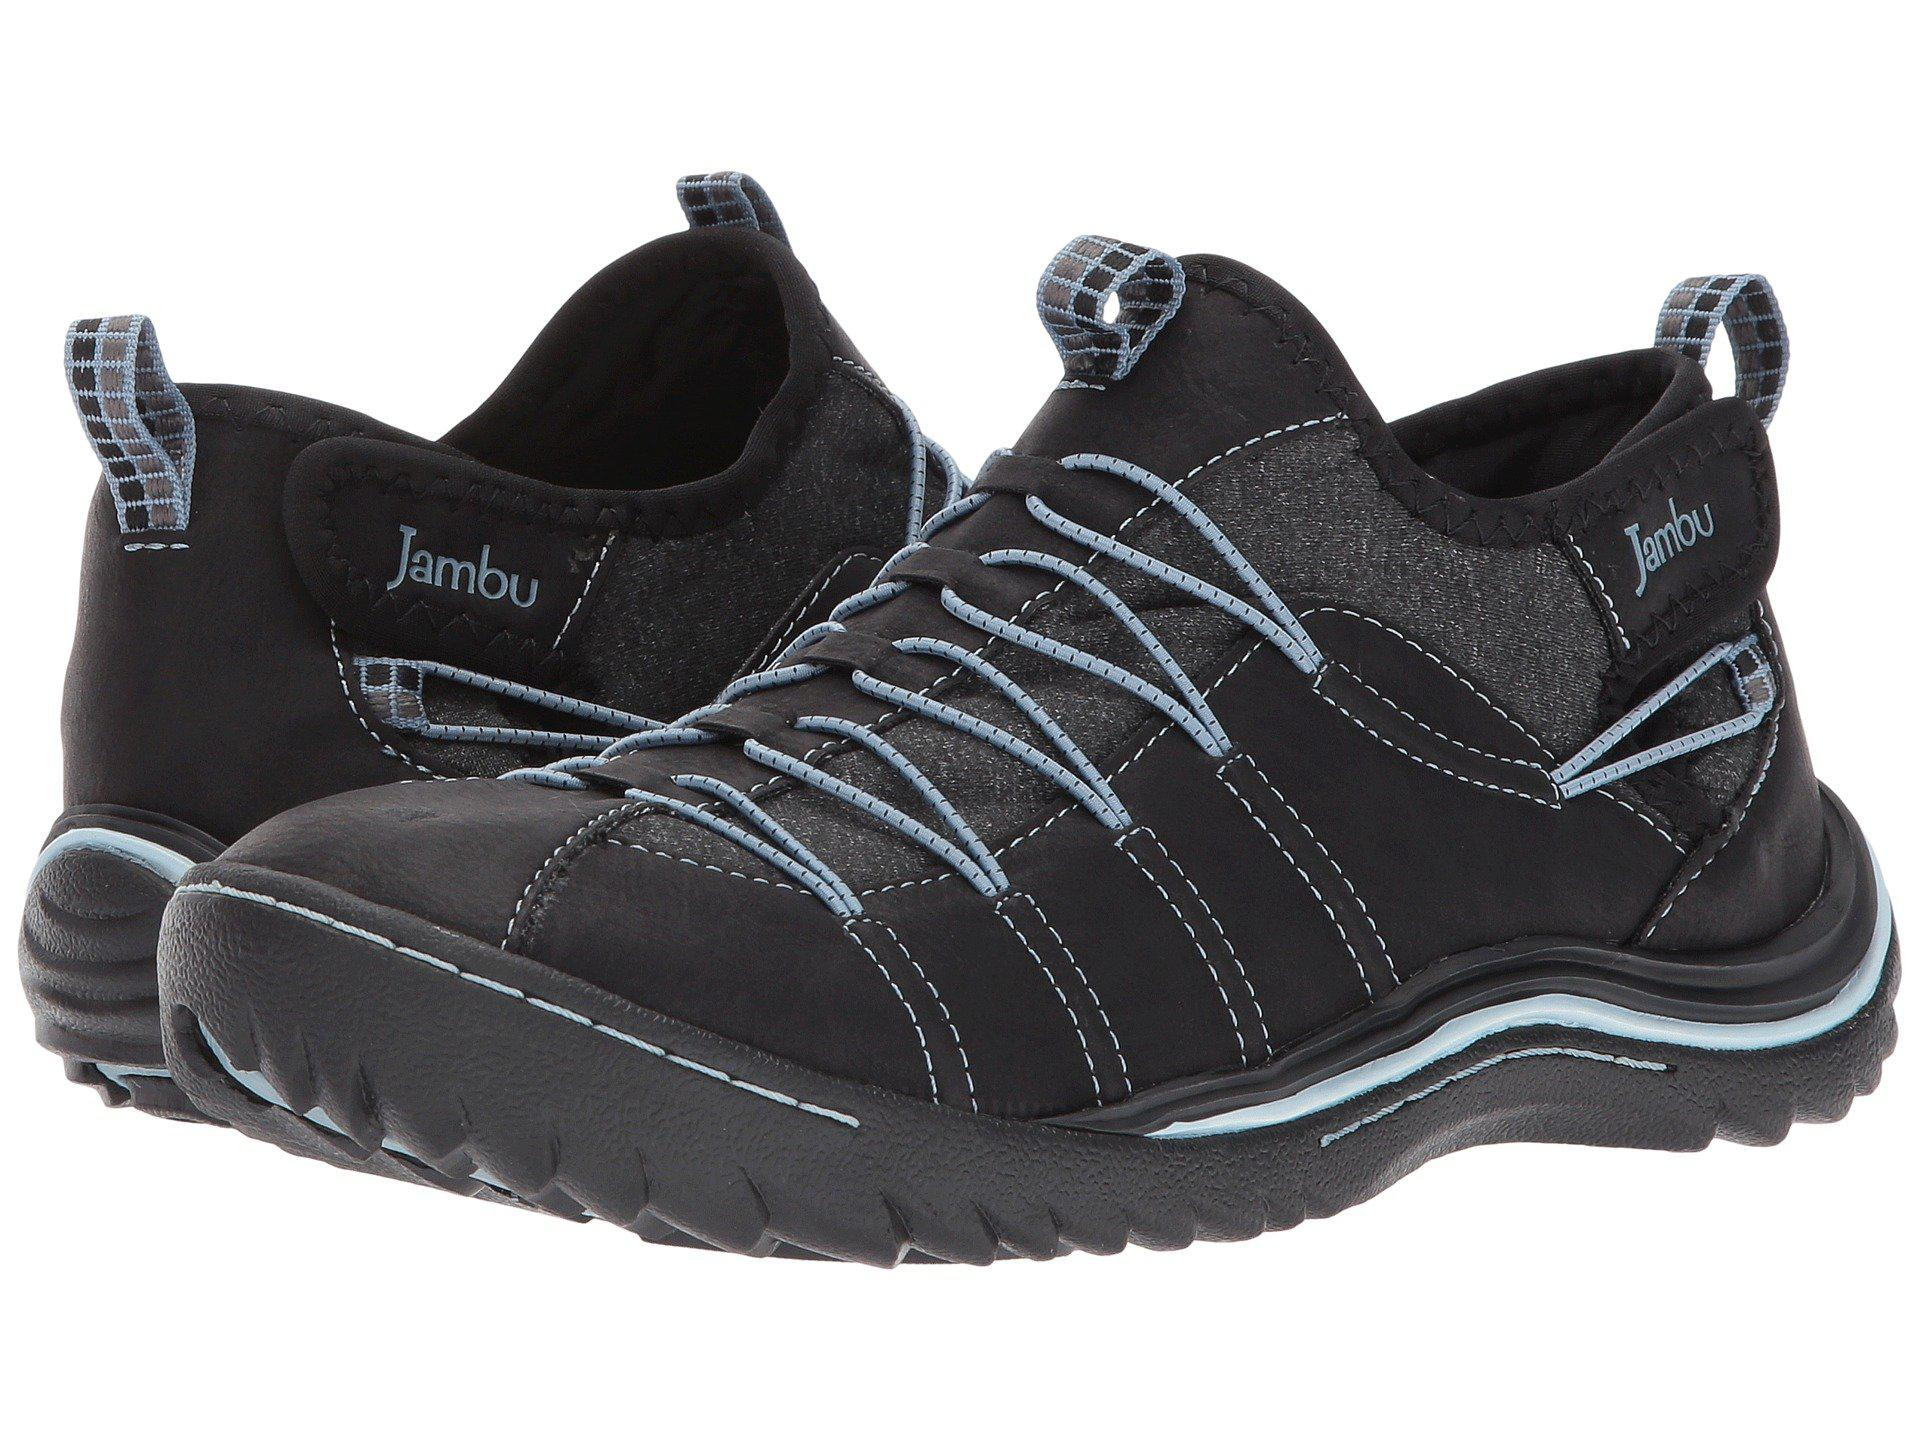 d52c4941bb ... (black/blue Smoke Tumbled Vegan/melange Neoprene) Women's. View  fullscreen